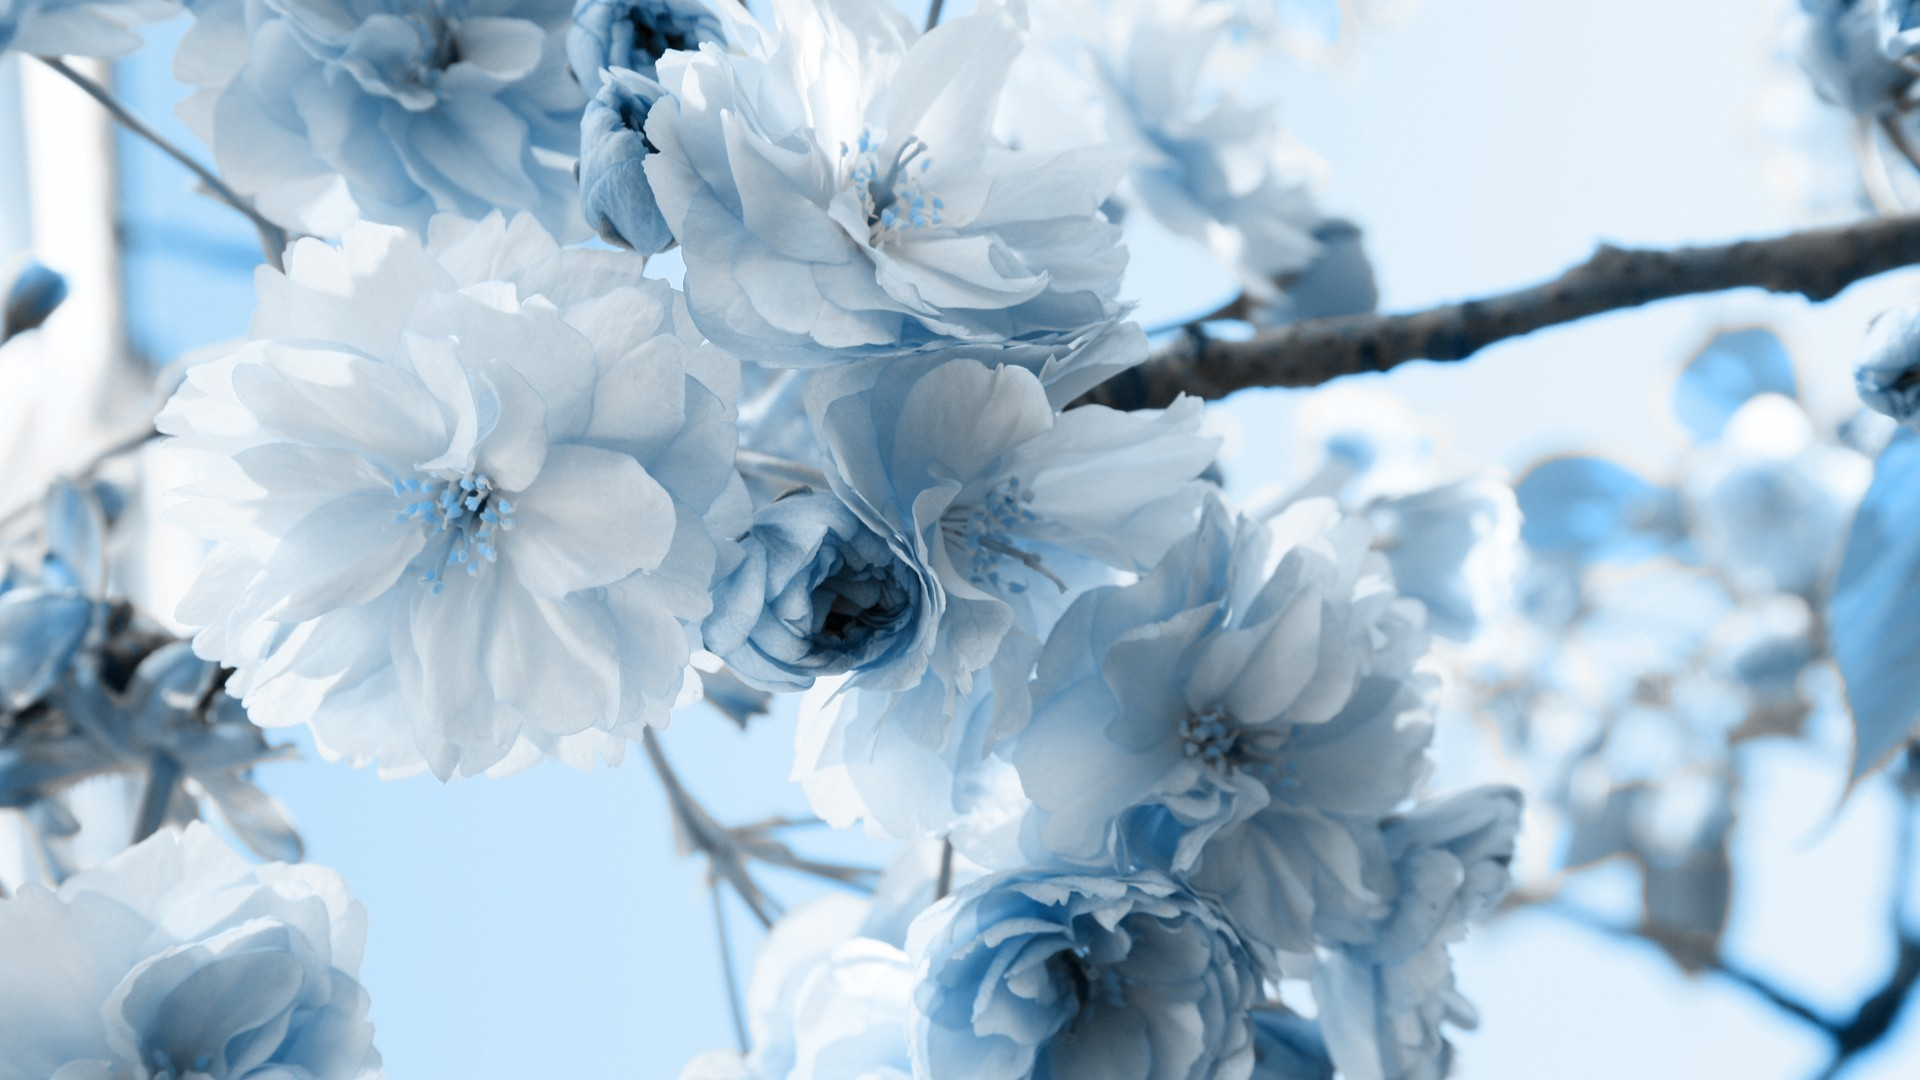 White wallpaper with blue flowers 9 cool hd wallpaper white wallpaper with blue flowers desktop background mightylinksfo Choice Image